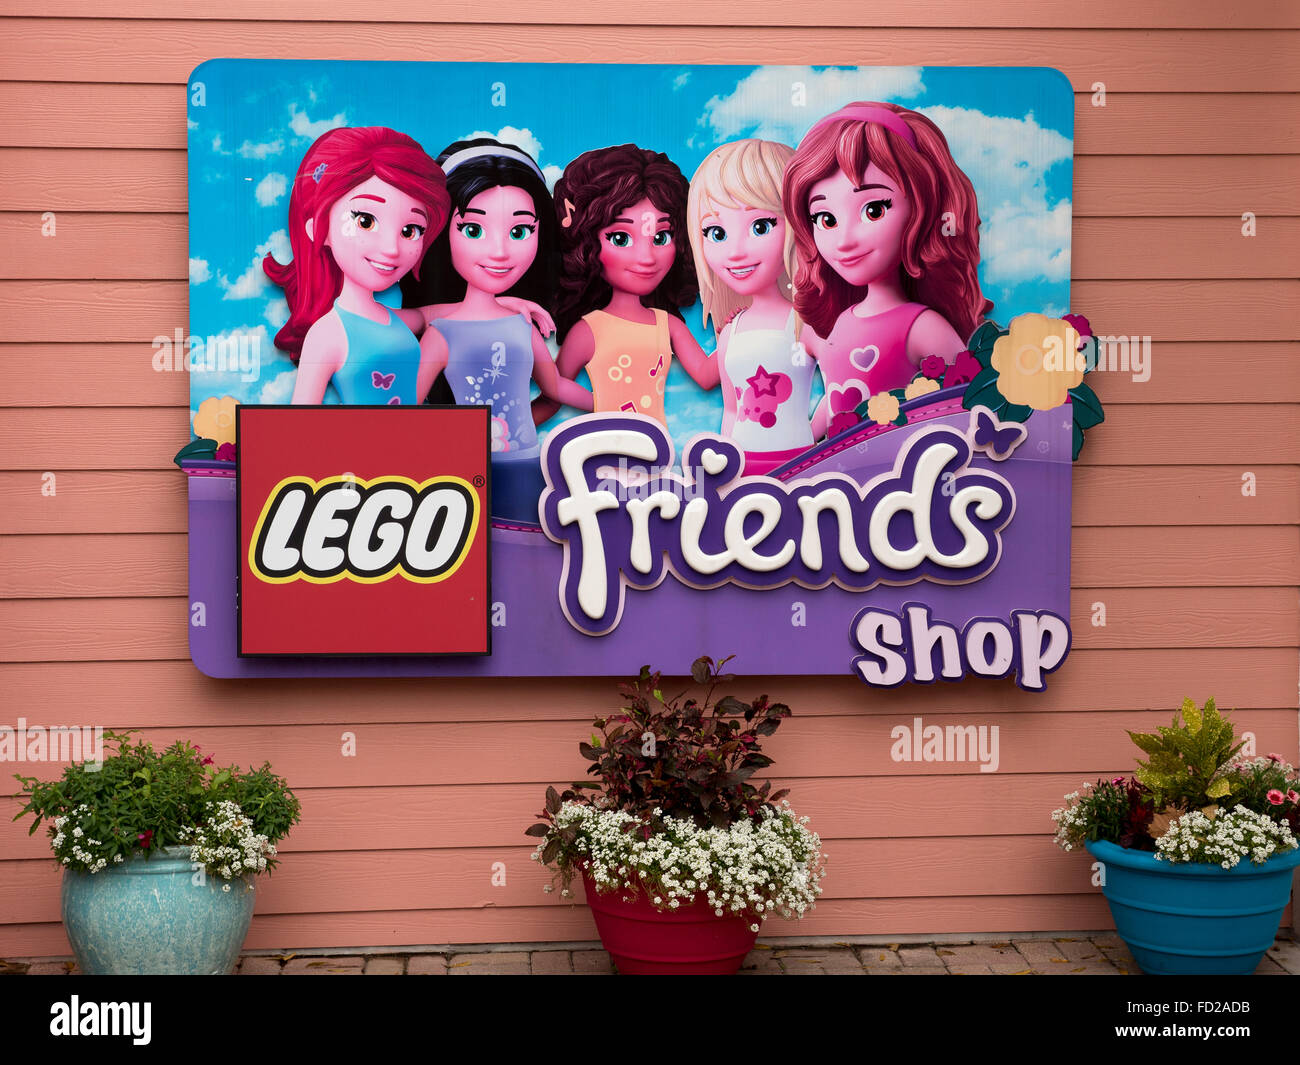 lego-friends-advertising-poster-outside-